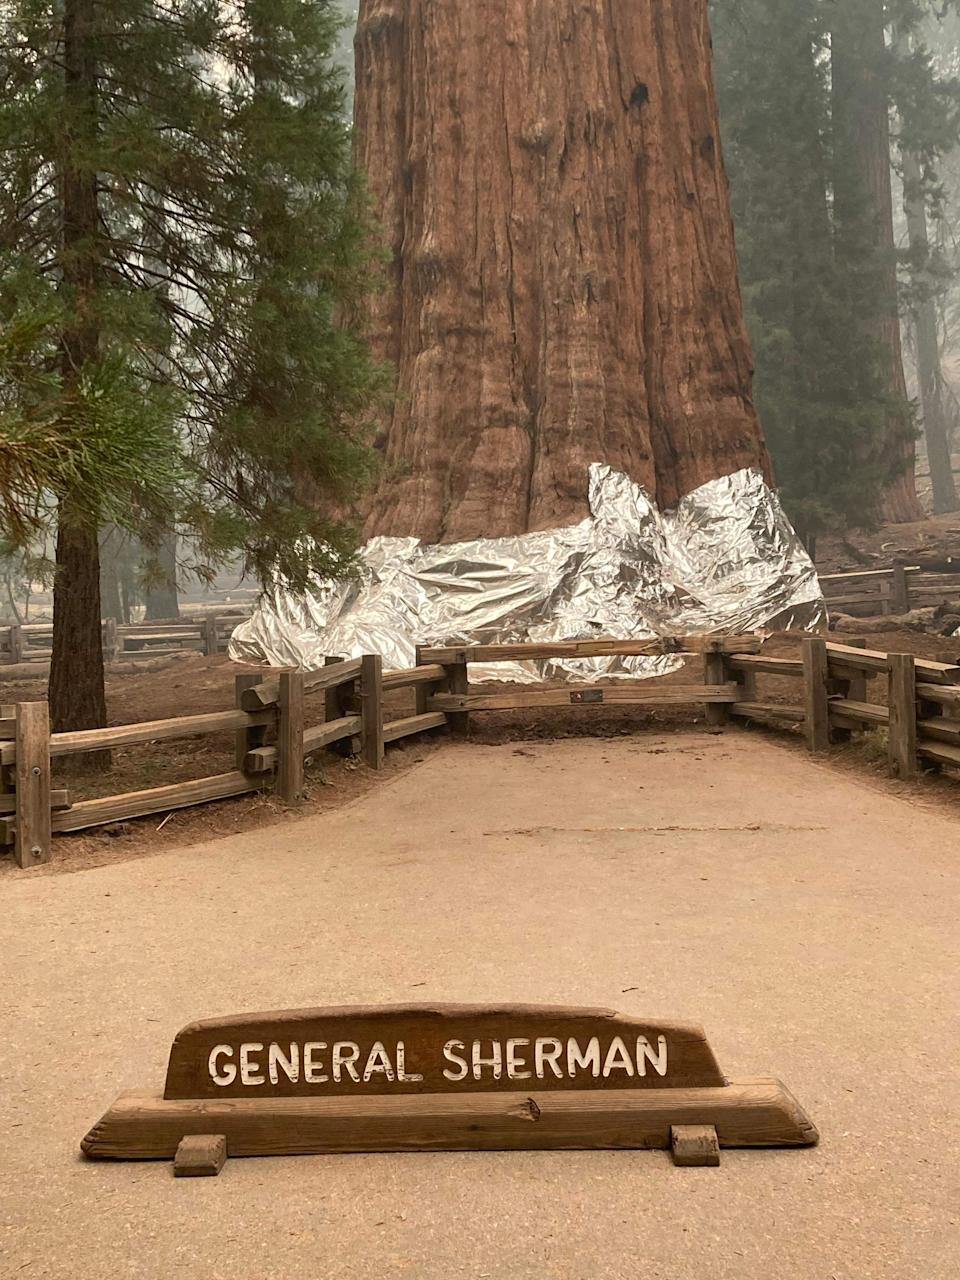 Lower portions of the giant Sequoia trees were wrapped in fire protective foil last week as the threat of wildfire intensified (NATIONAL PARK SERVICE/AFP via Getty Image)